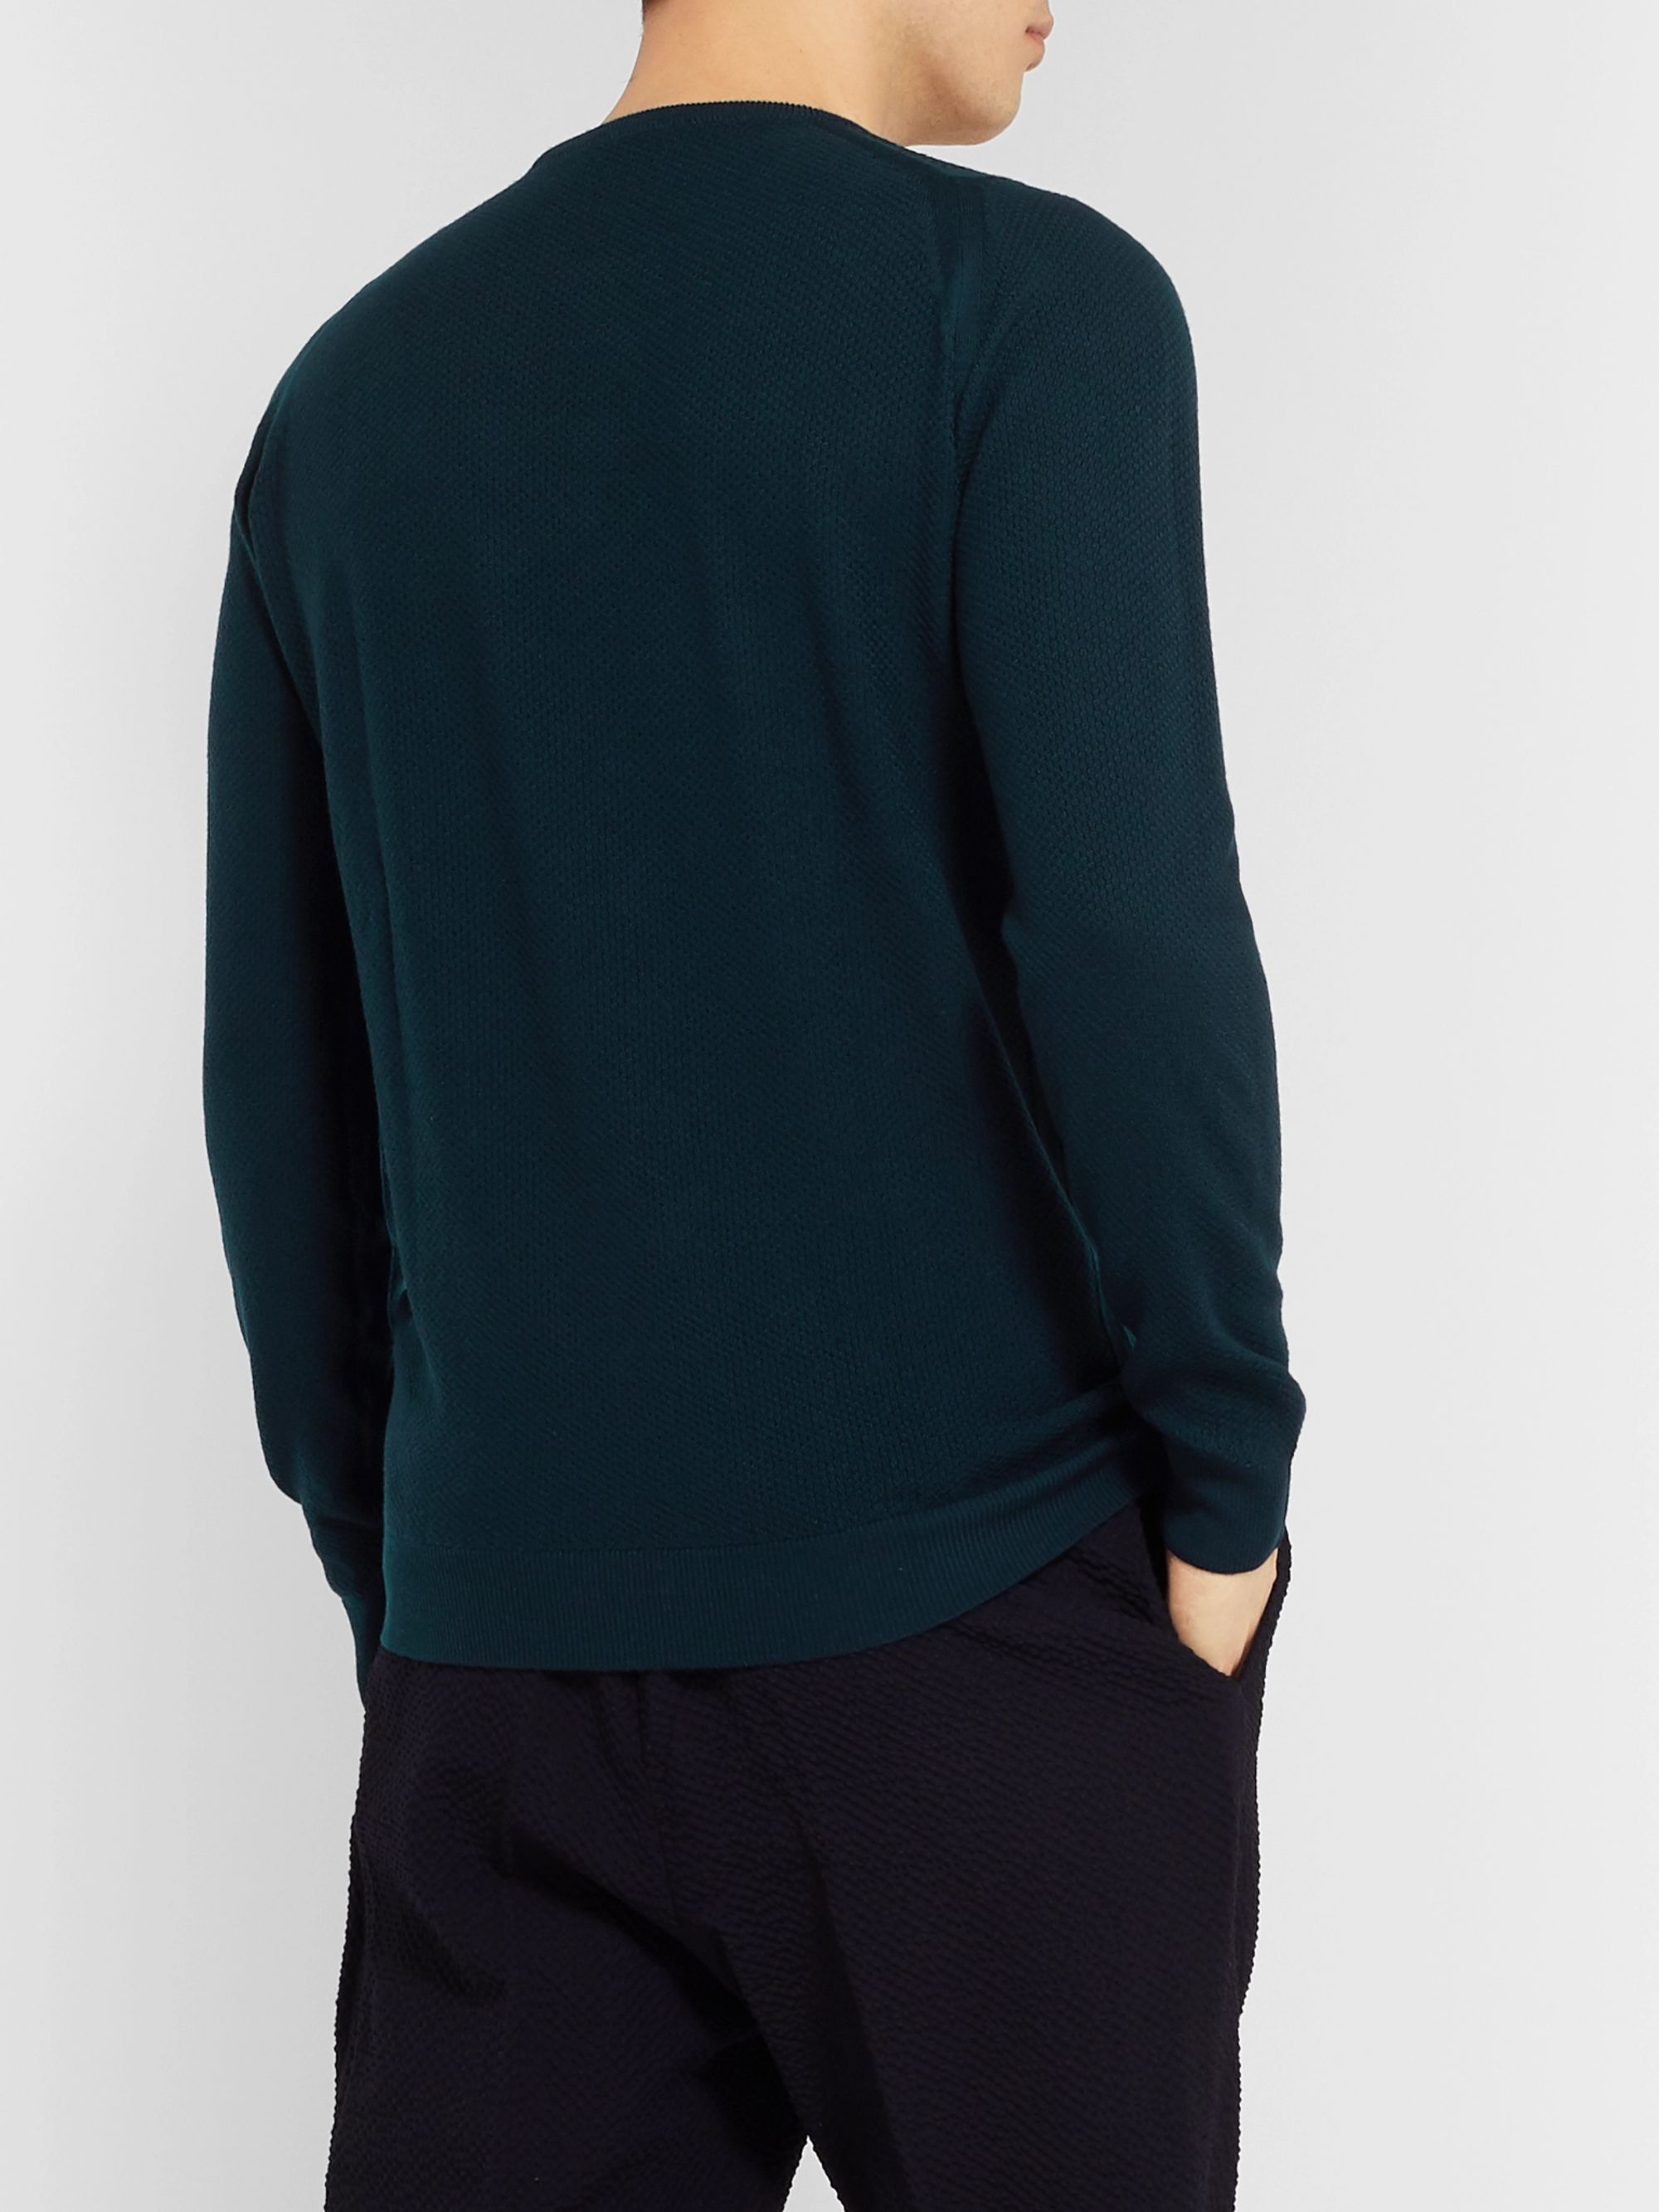 John Smedley Slim-Fit Honeycomb-Knit Merino Wool Sweater